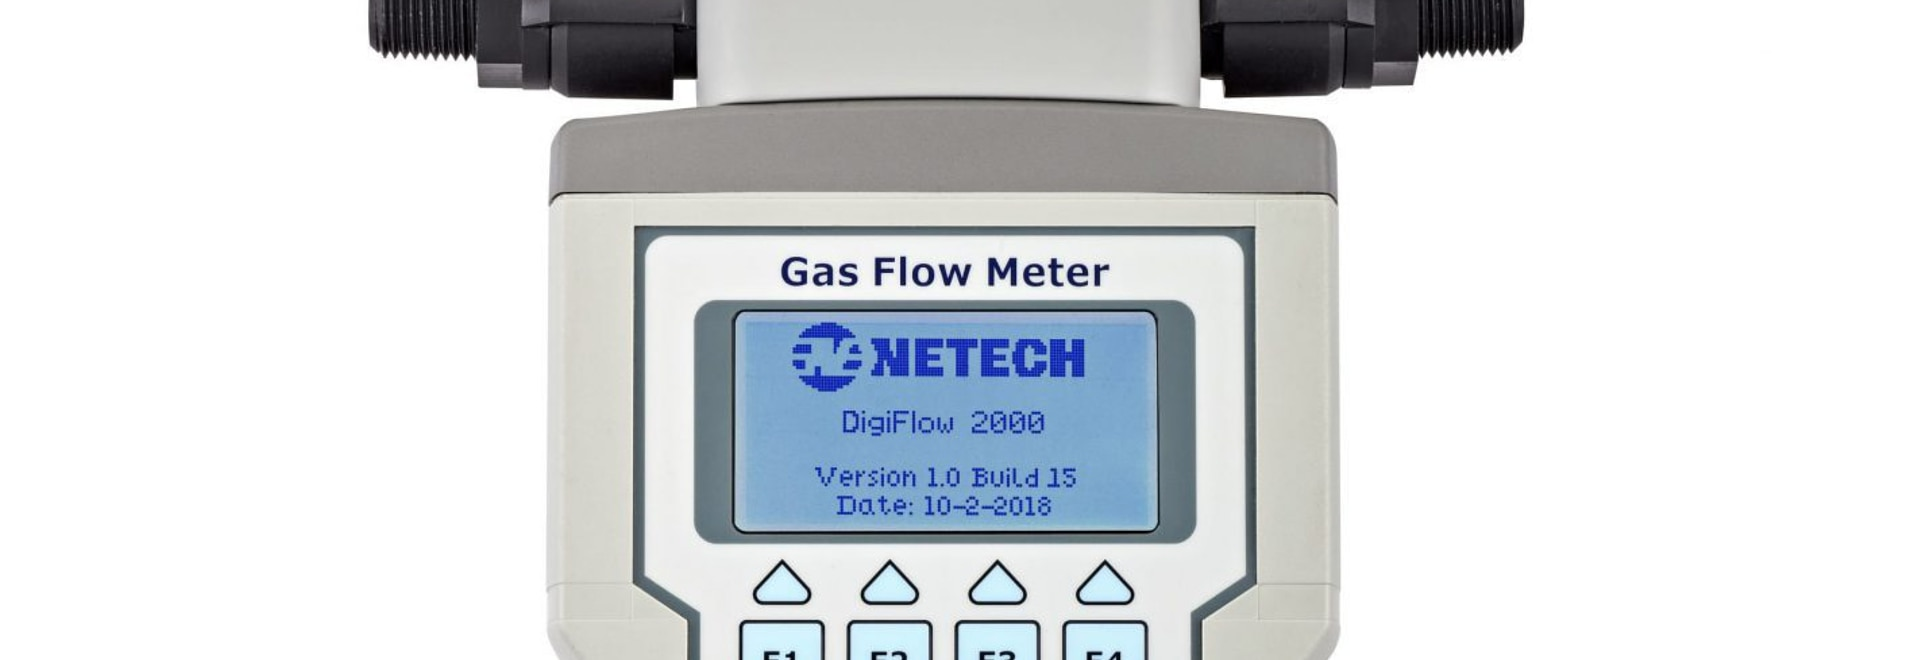 Netech Corp. Introduces New Gas Flow Meters